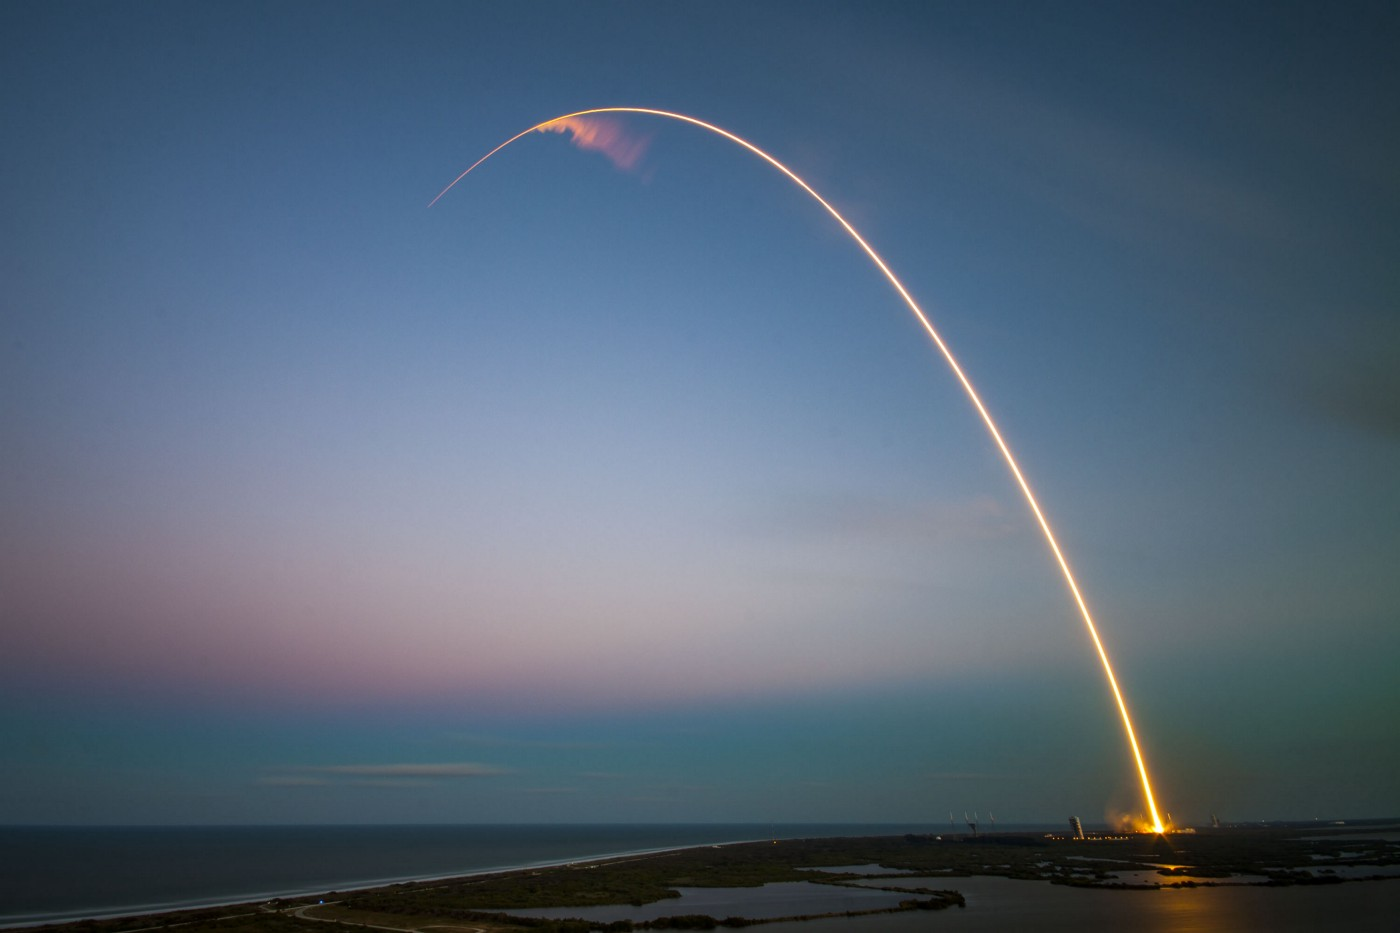 A rocket taking off in a beautiful arch in the evening sky.